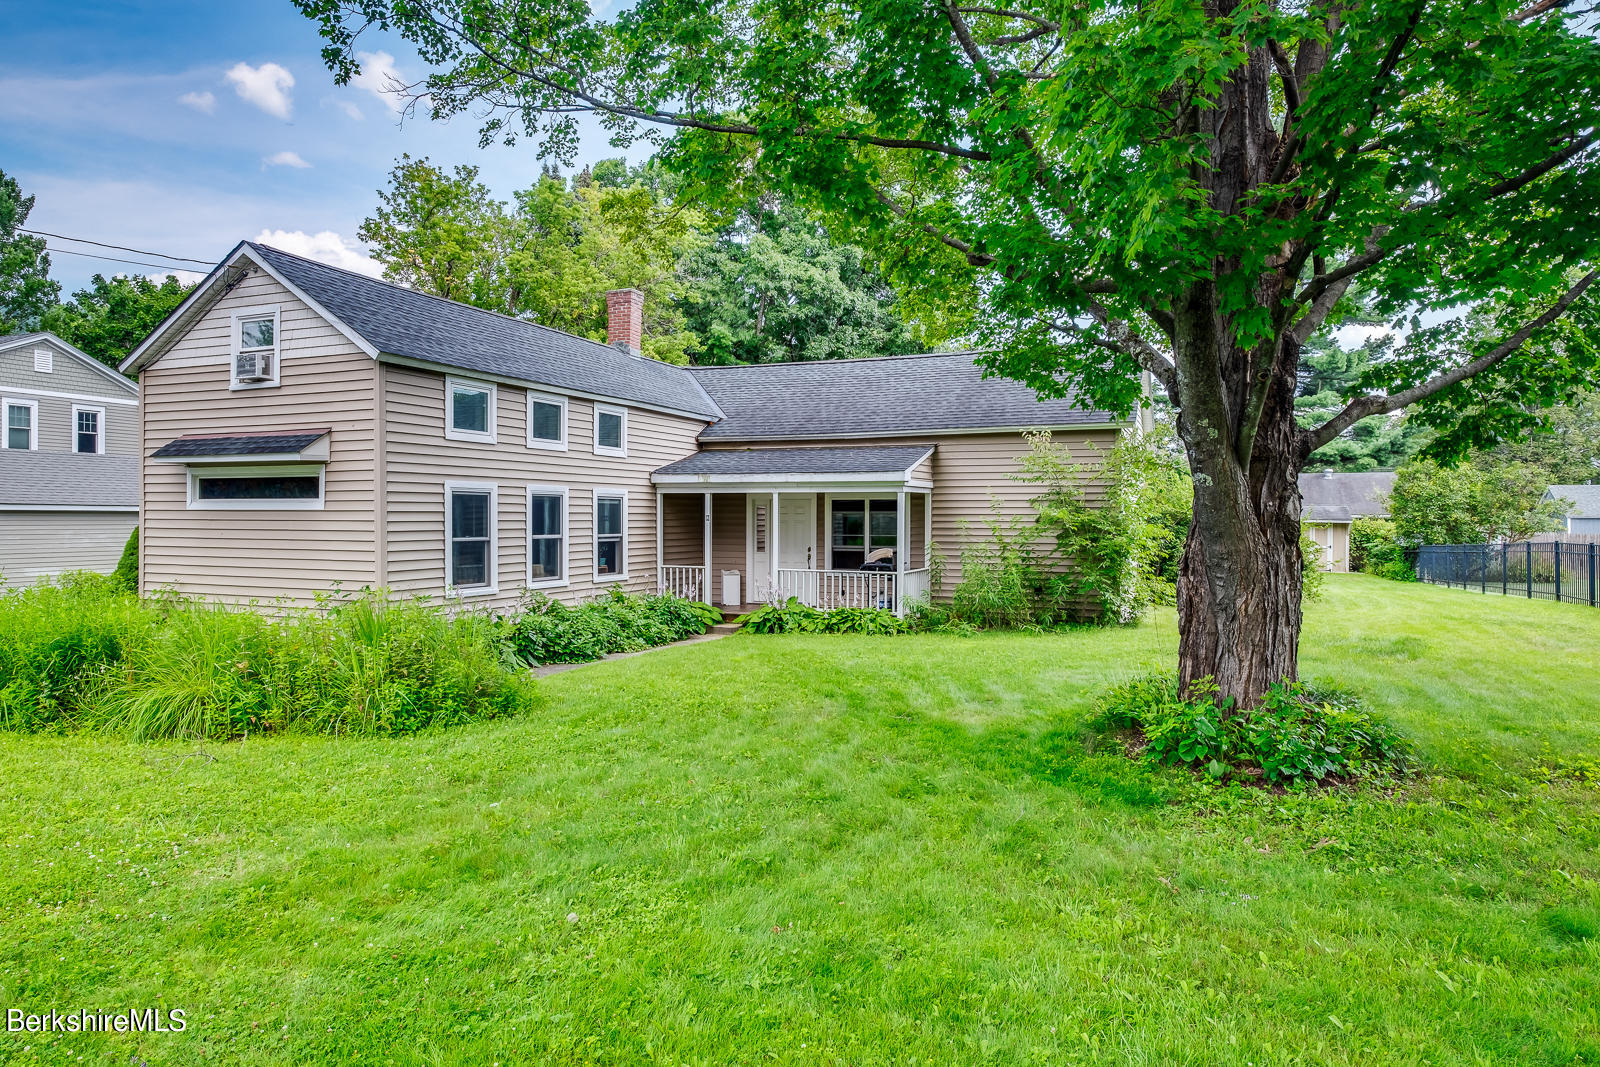 12 Manning, Williamstown, Massachusetts 01267, 4 Bedrooms Bedrooms, 7 Rooms Rooms,2 BathroomsBathrooms,Residential,For Sale,Manning,235232